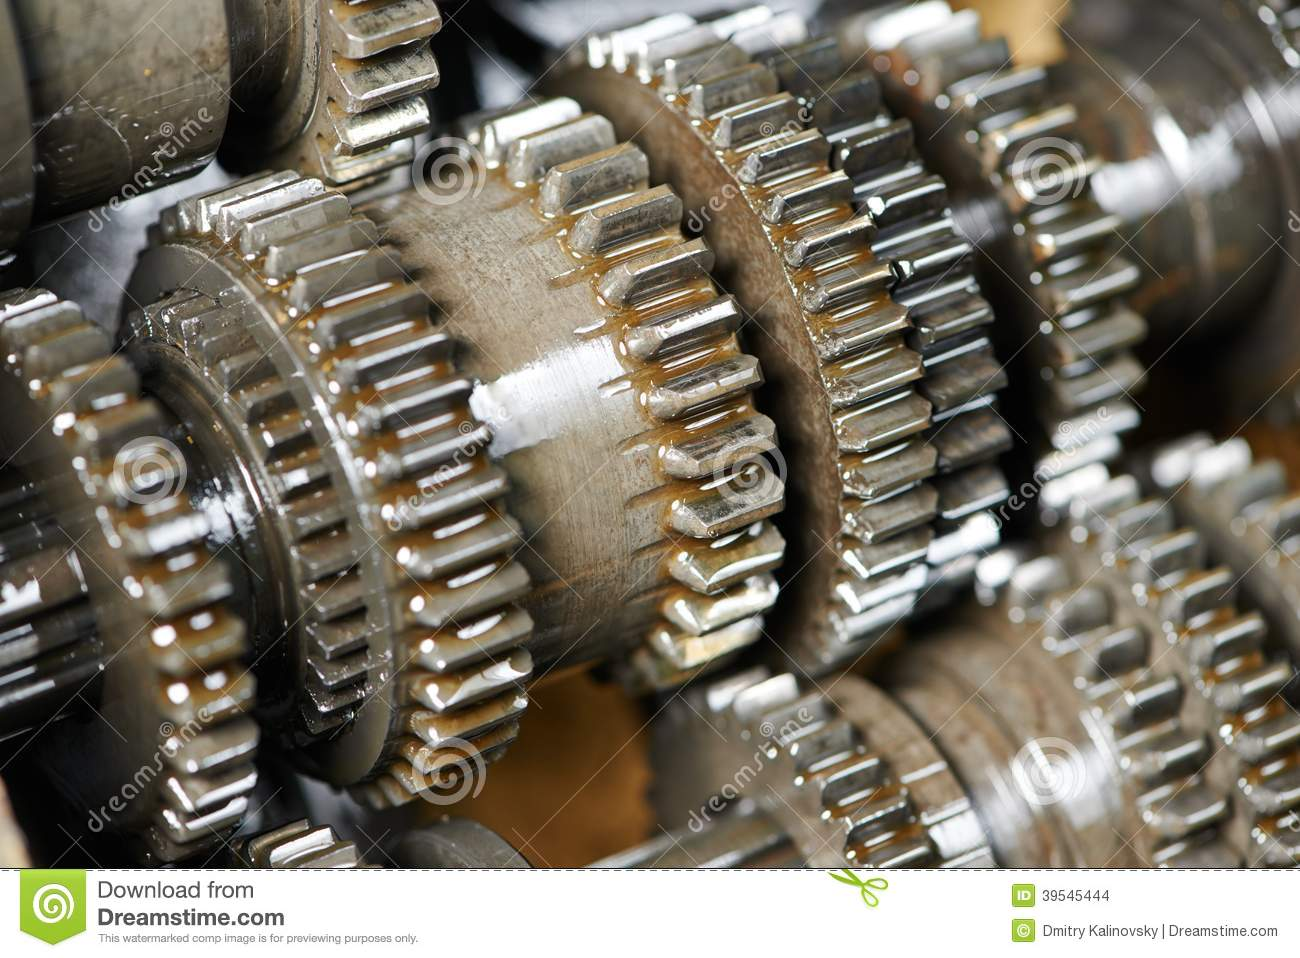 Auto Transmission Repair >> Automobile Engine Or Transmission Gear Box Stock Photo - Image: 39545444